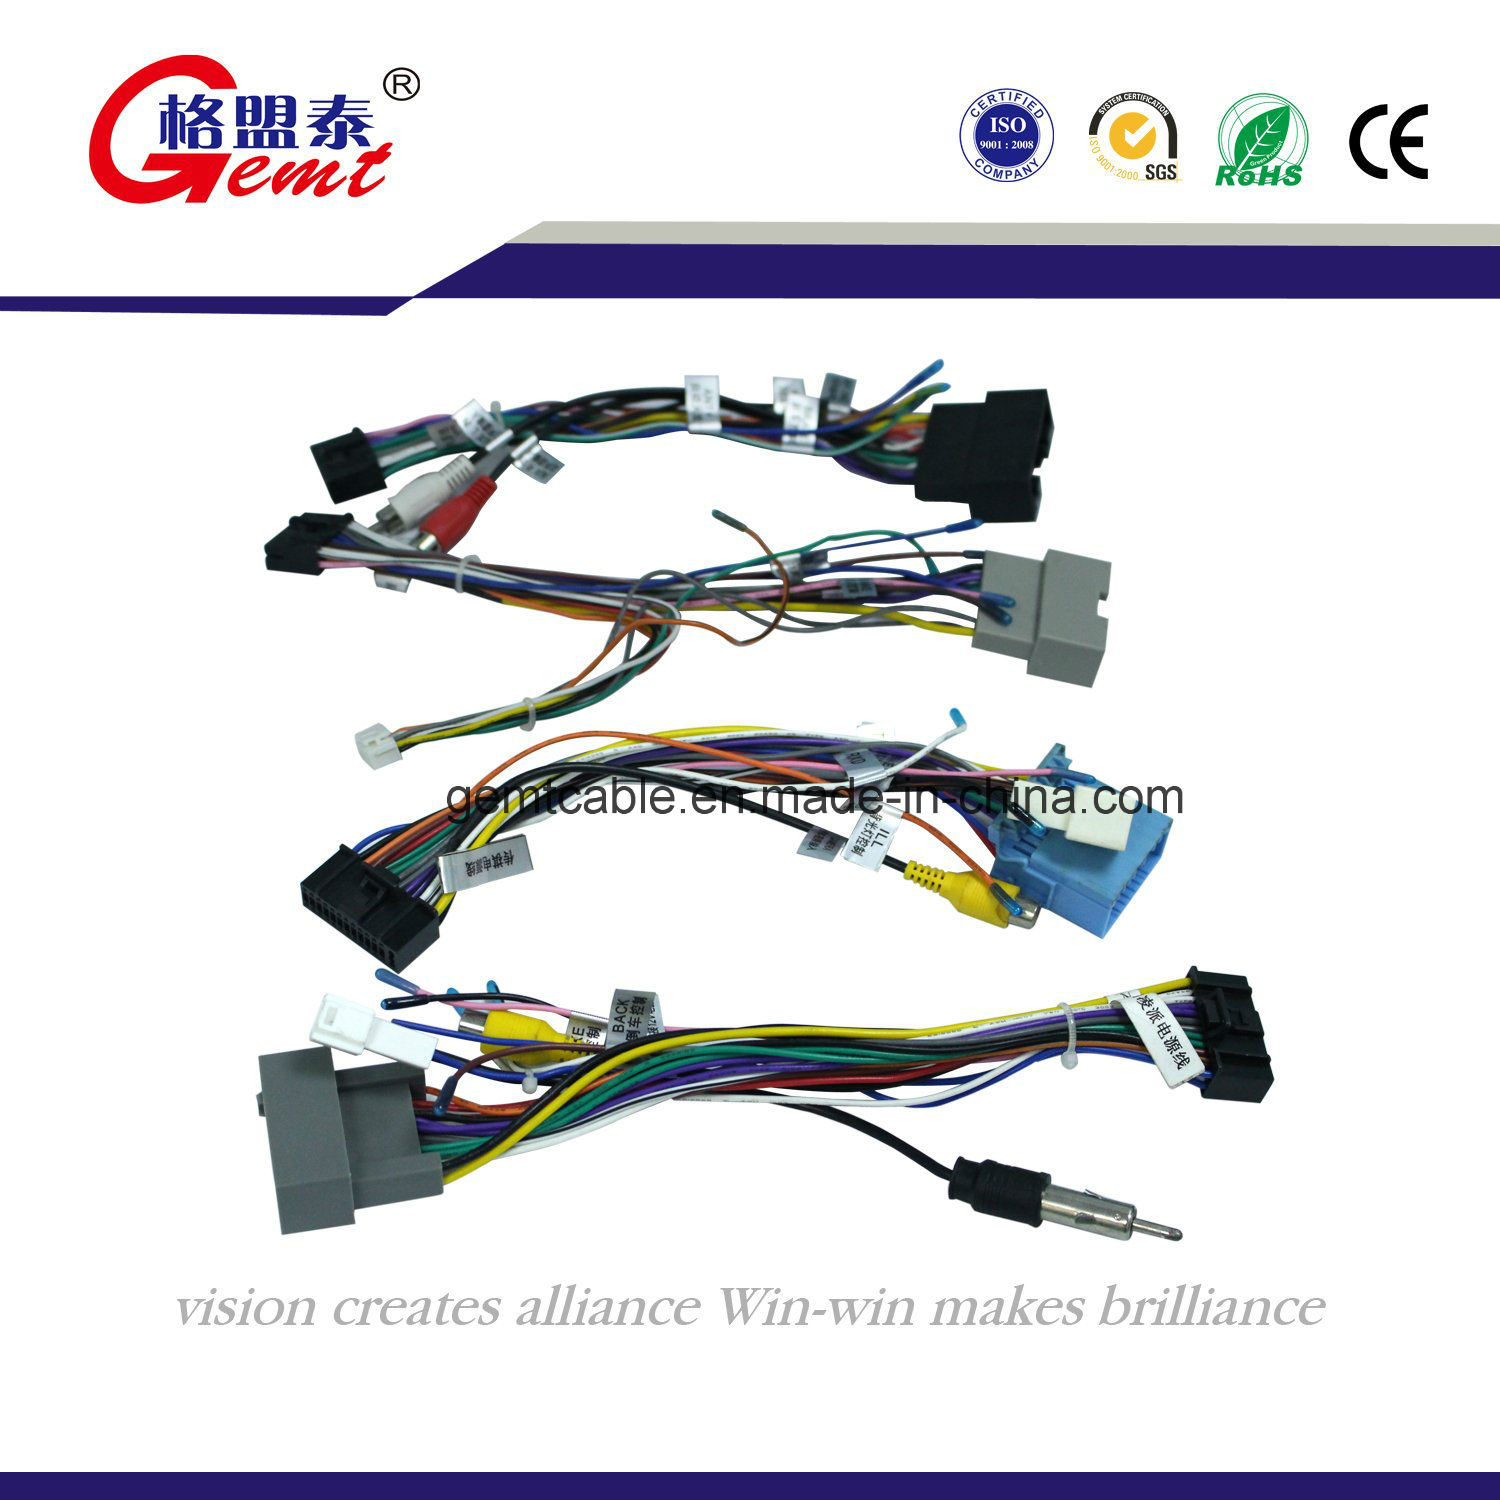 Wiring Harness Manufacturer Psa Diagram Manufacture China Peugeot Citroen Extension Cord Photos Pakistan